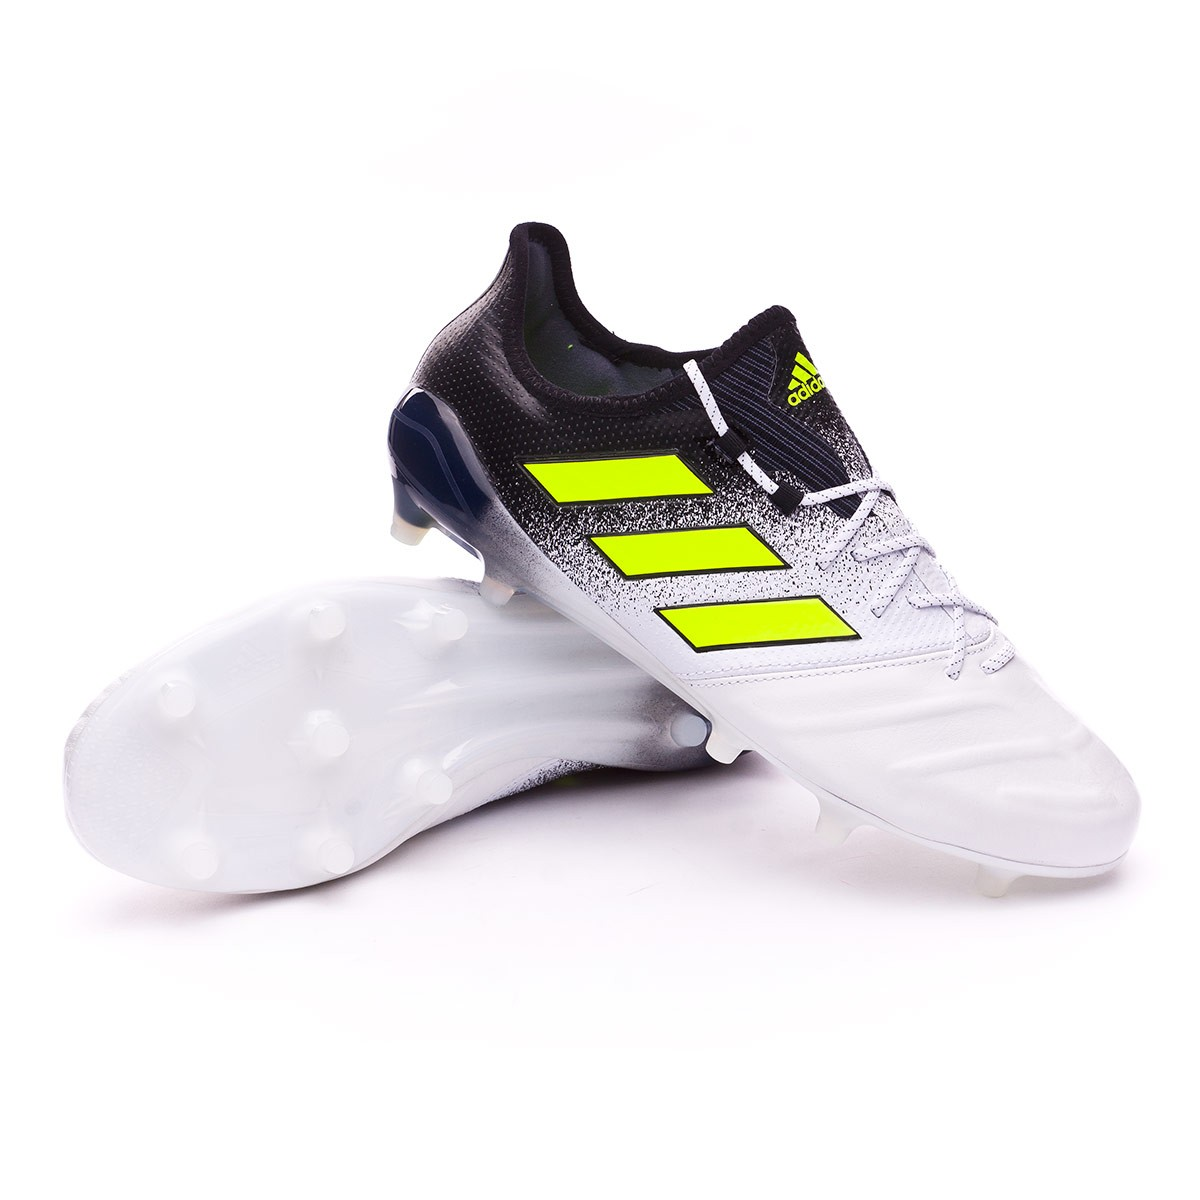 finest selection d5d20 6c958 adidas Ace 17.1 FG Leather Boot